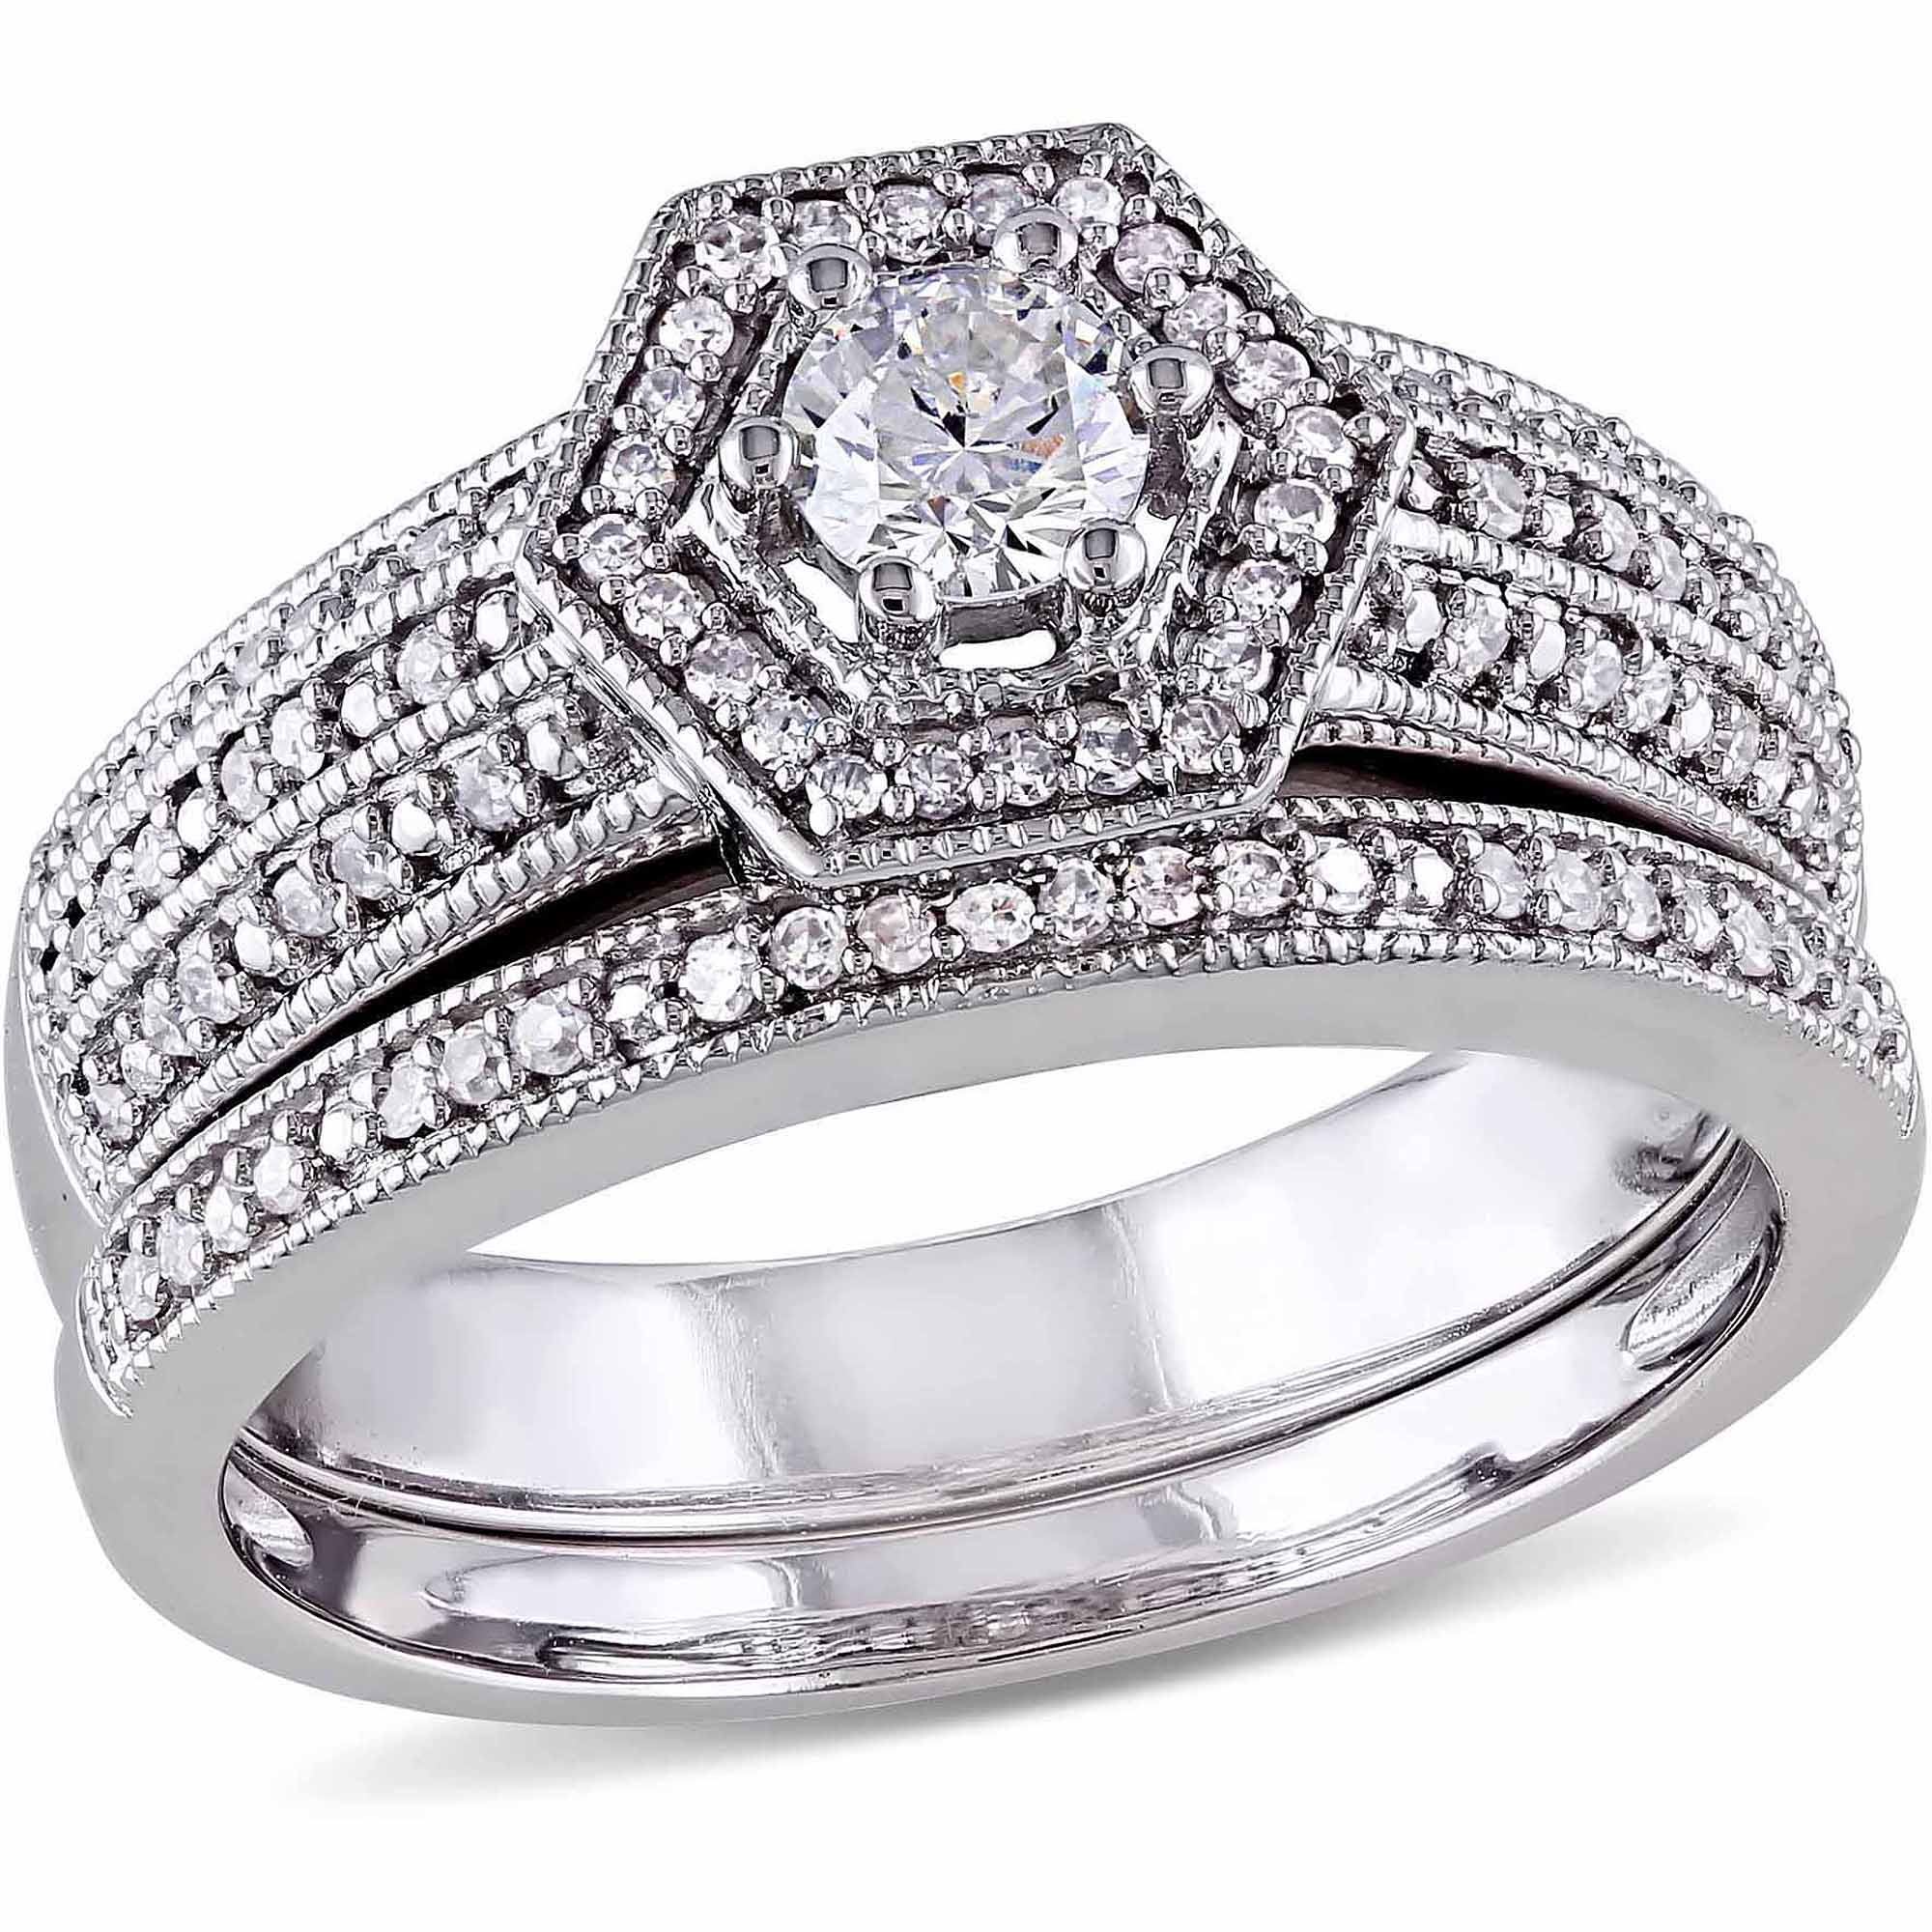 Miabella 1/2 Carat T.W. Diamond 14kt White Gold Bridal Set